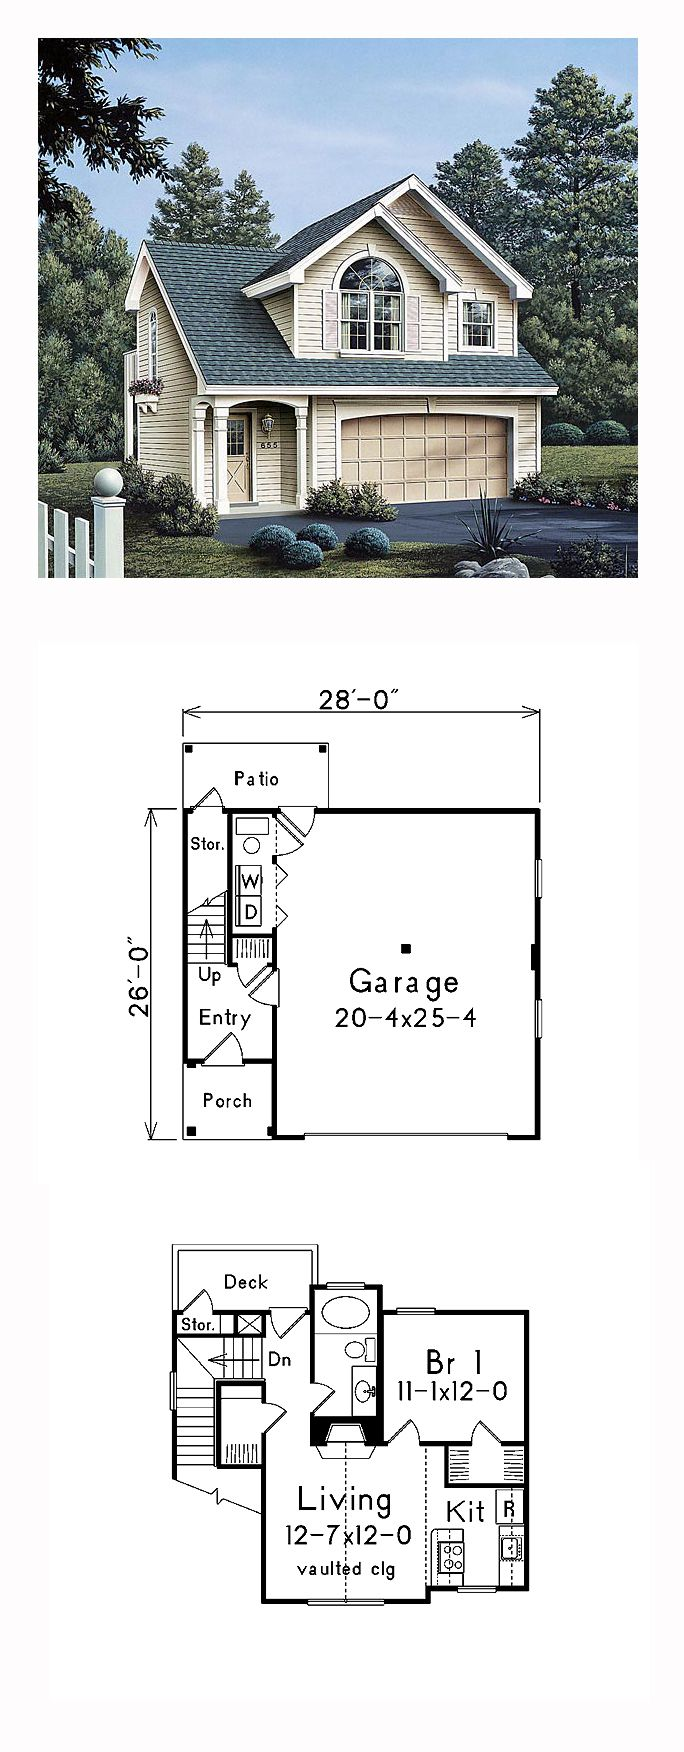 50 best Garage Apartment Plans images on Pinterest | Garage ...